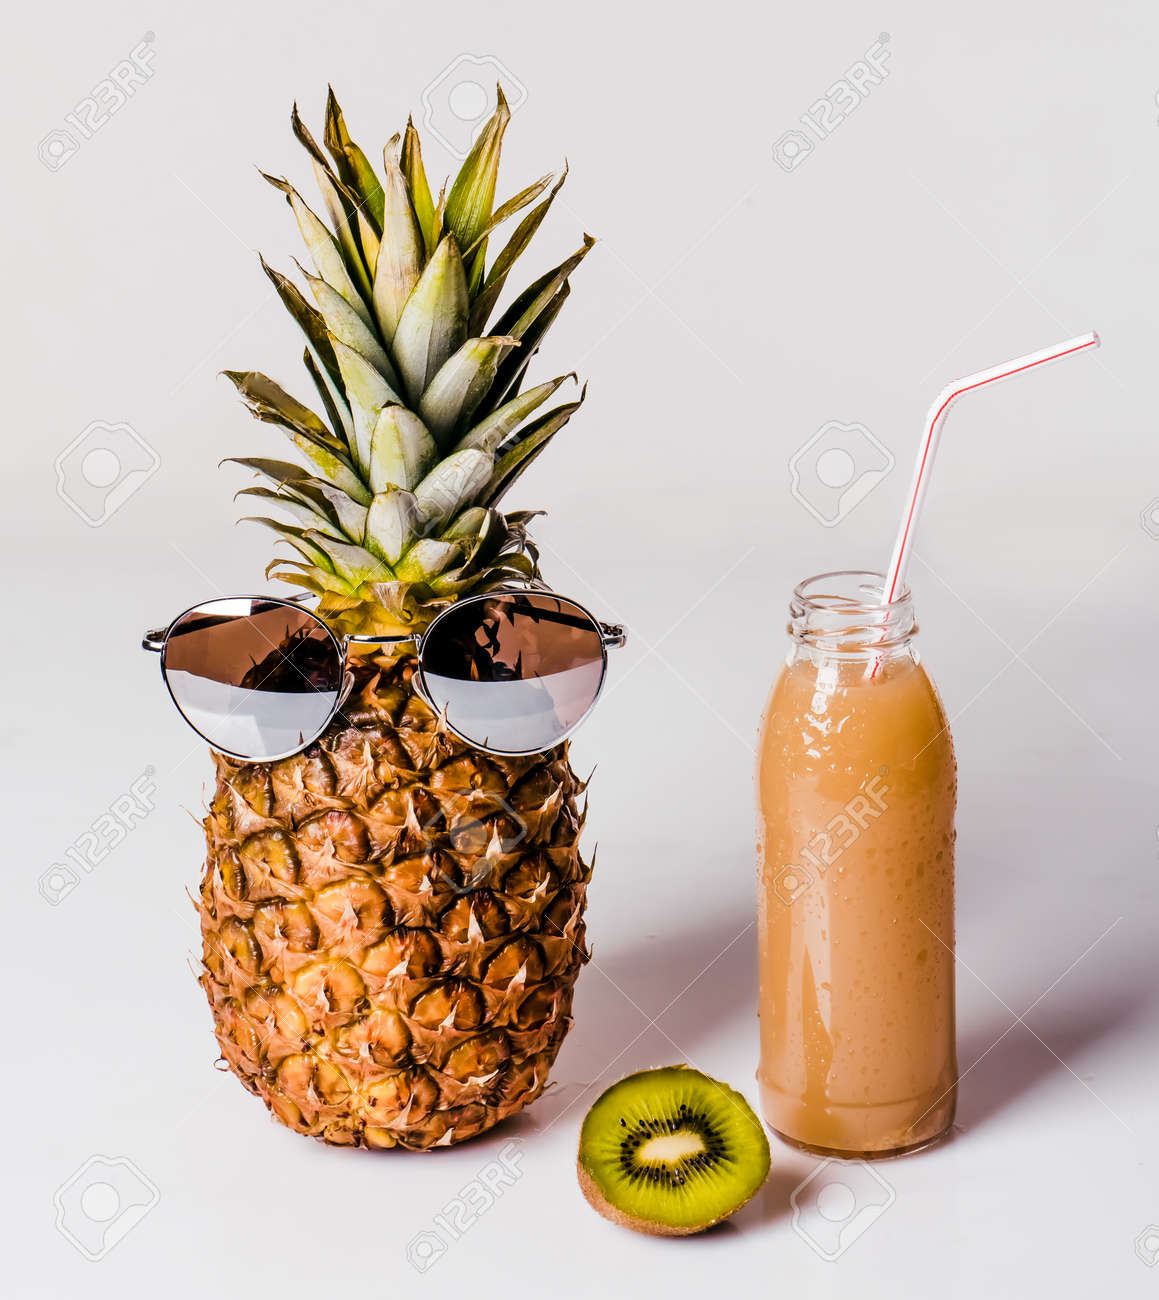 60e3b7a2c Pineapple in glasses with pineapple juice in transparent vessel and cut  kiwi on